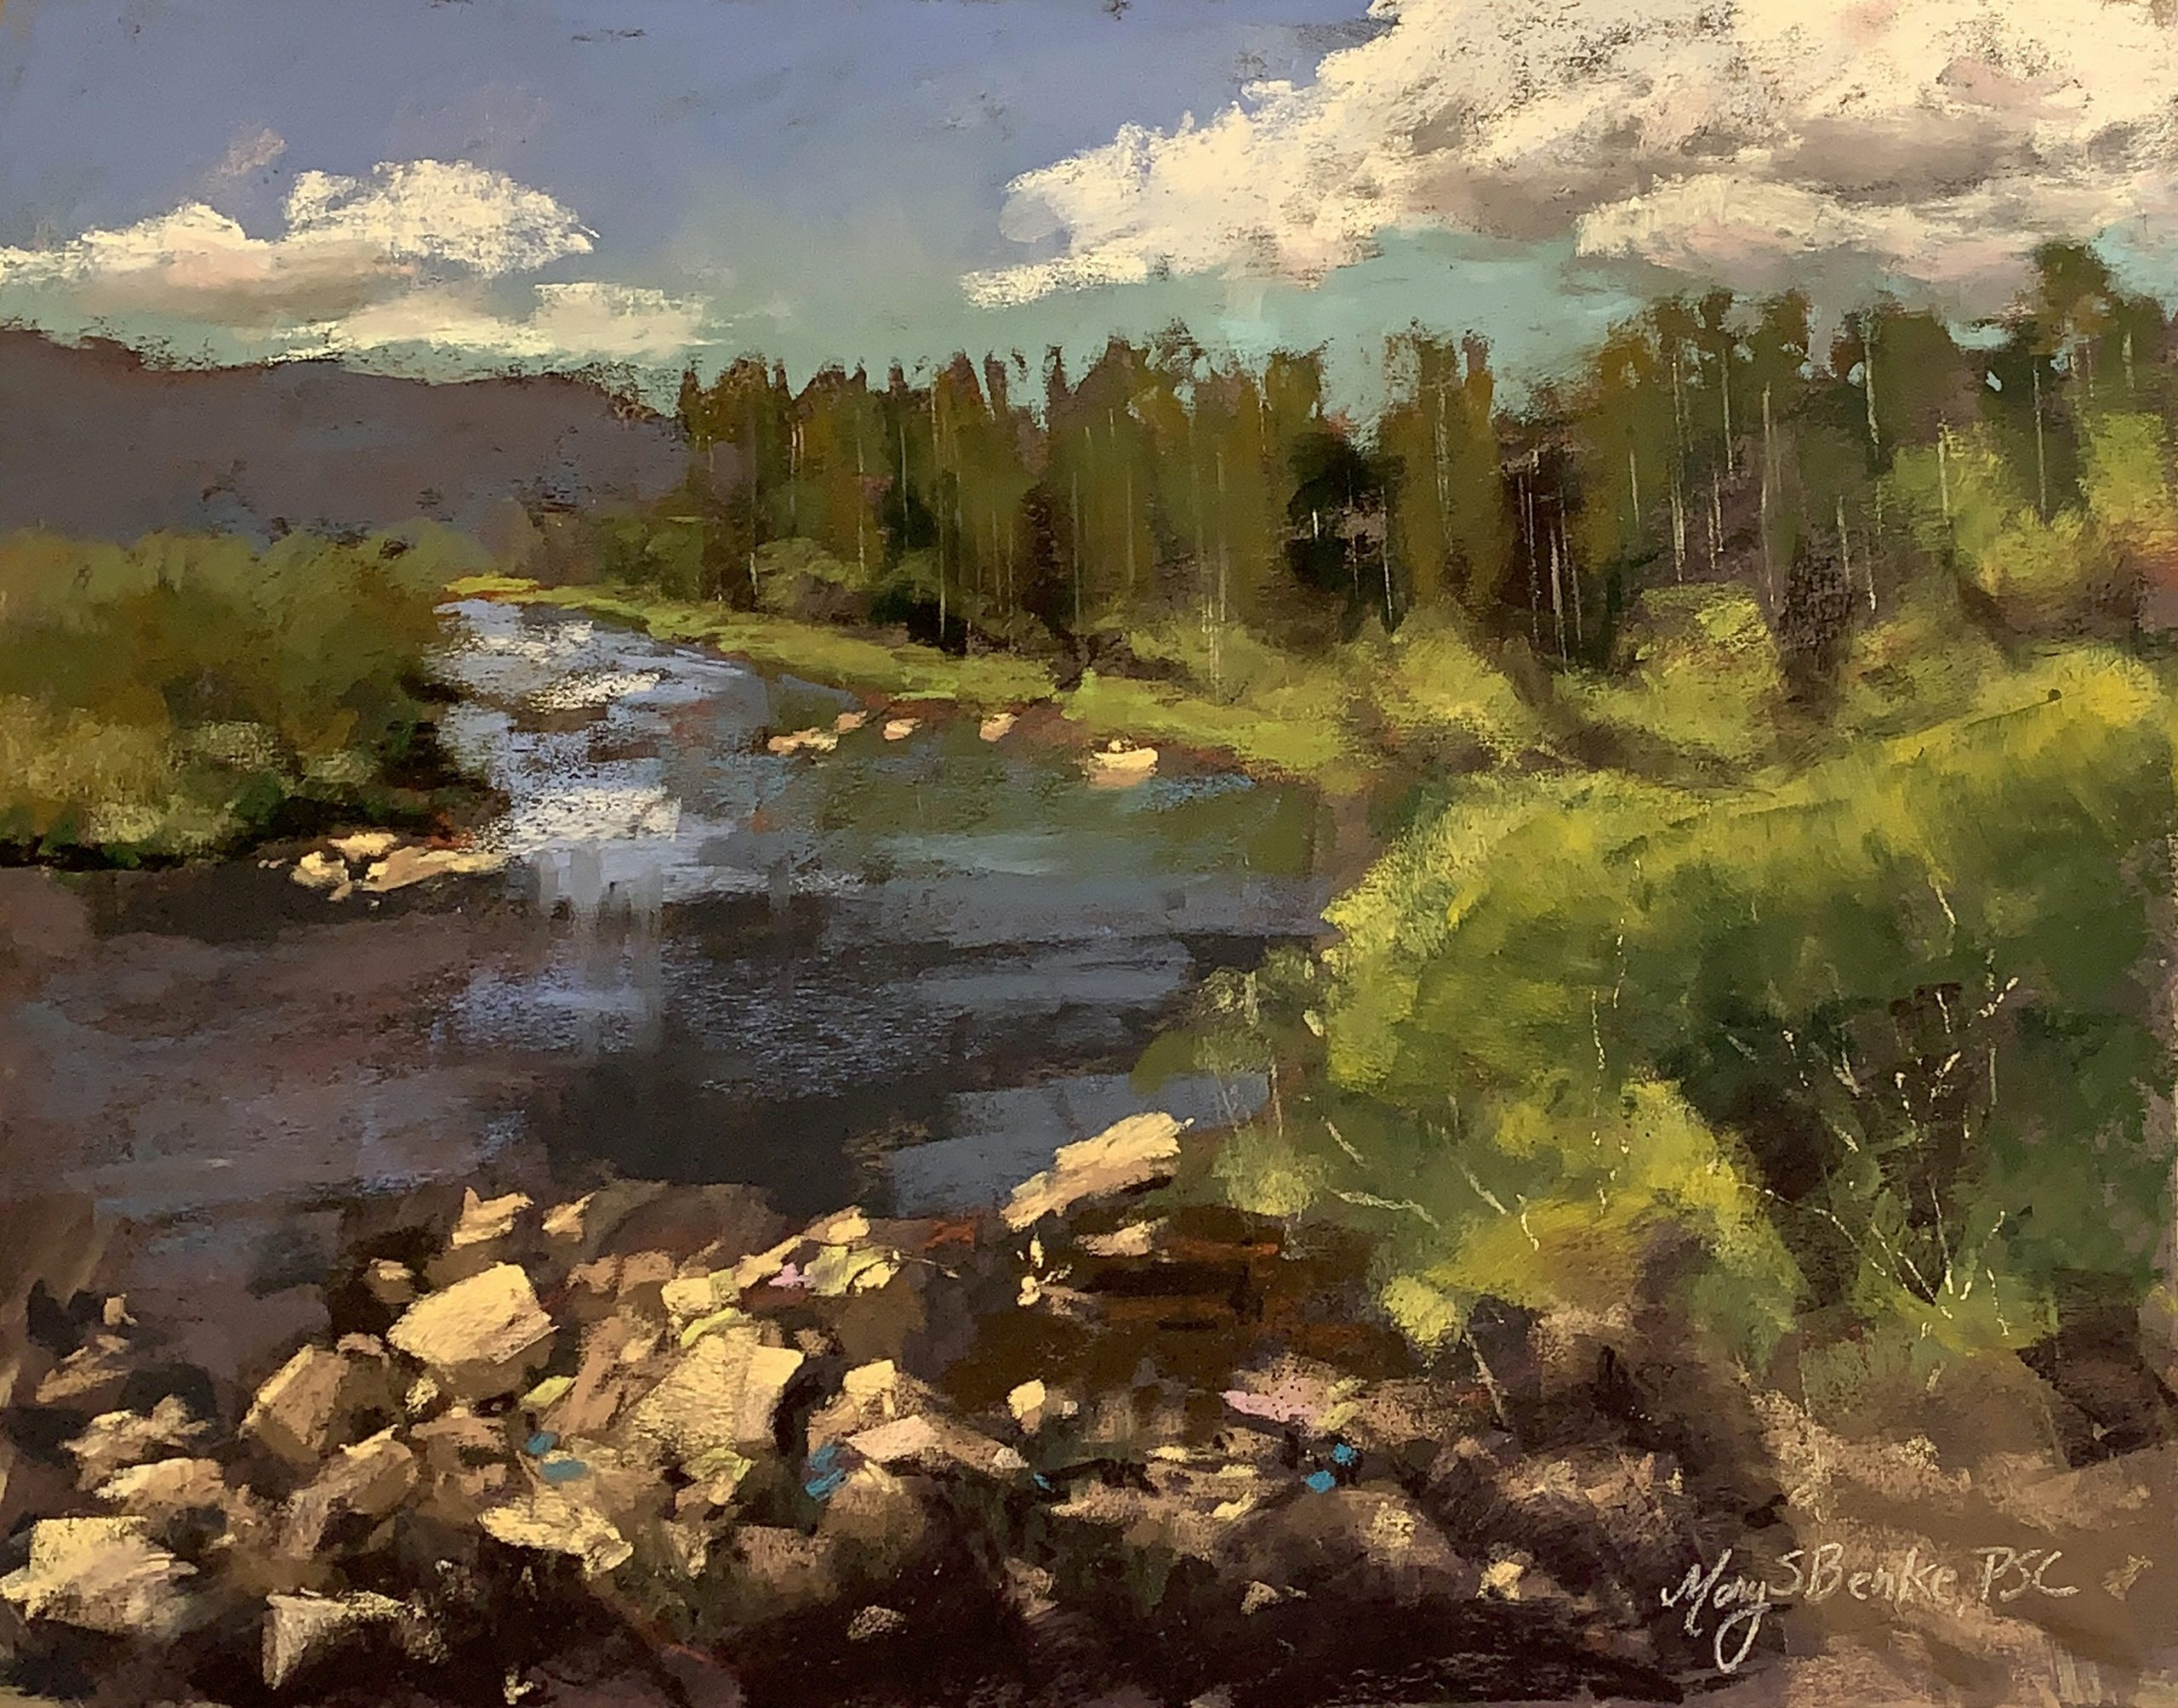 This pastel painting of a river leading toward Shadow Mountain near Grand Lake features a typical spectacular Colorado scene: colorful rocks, lush foliage, distant aspen trees, blue water, a purple mountain and dramatic sky by Mary Benke